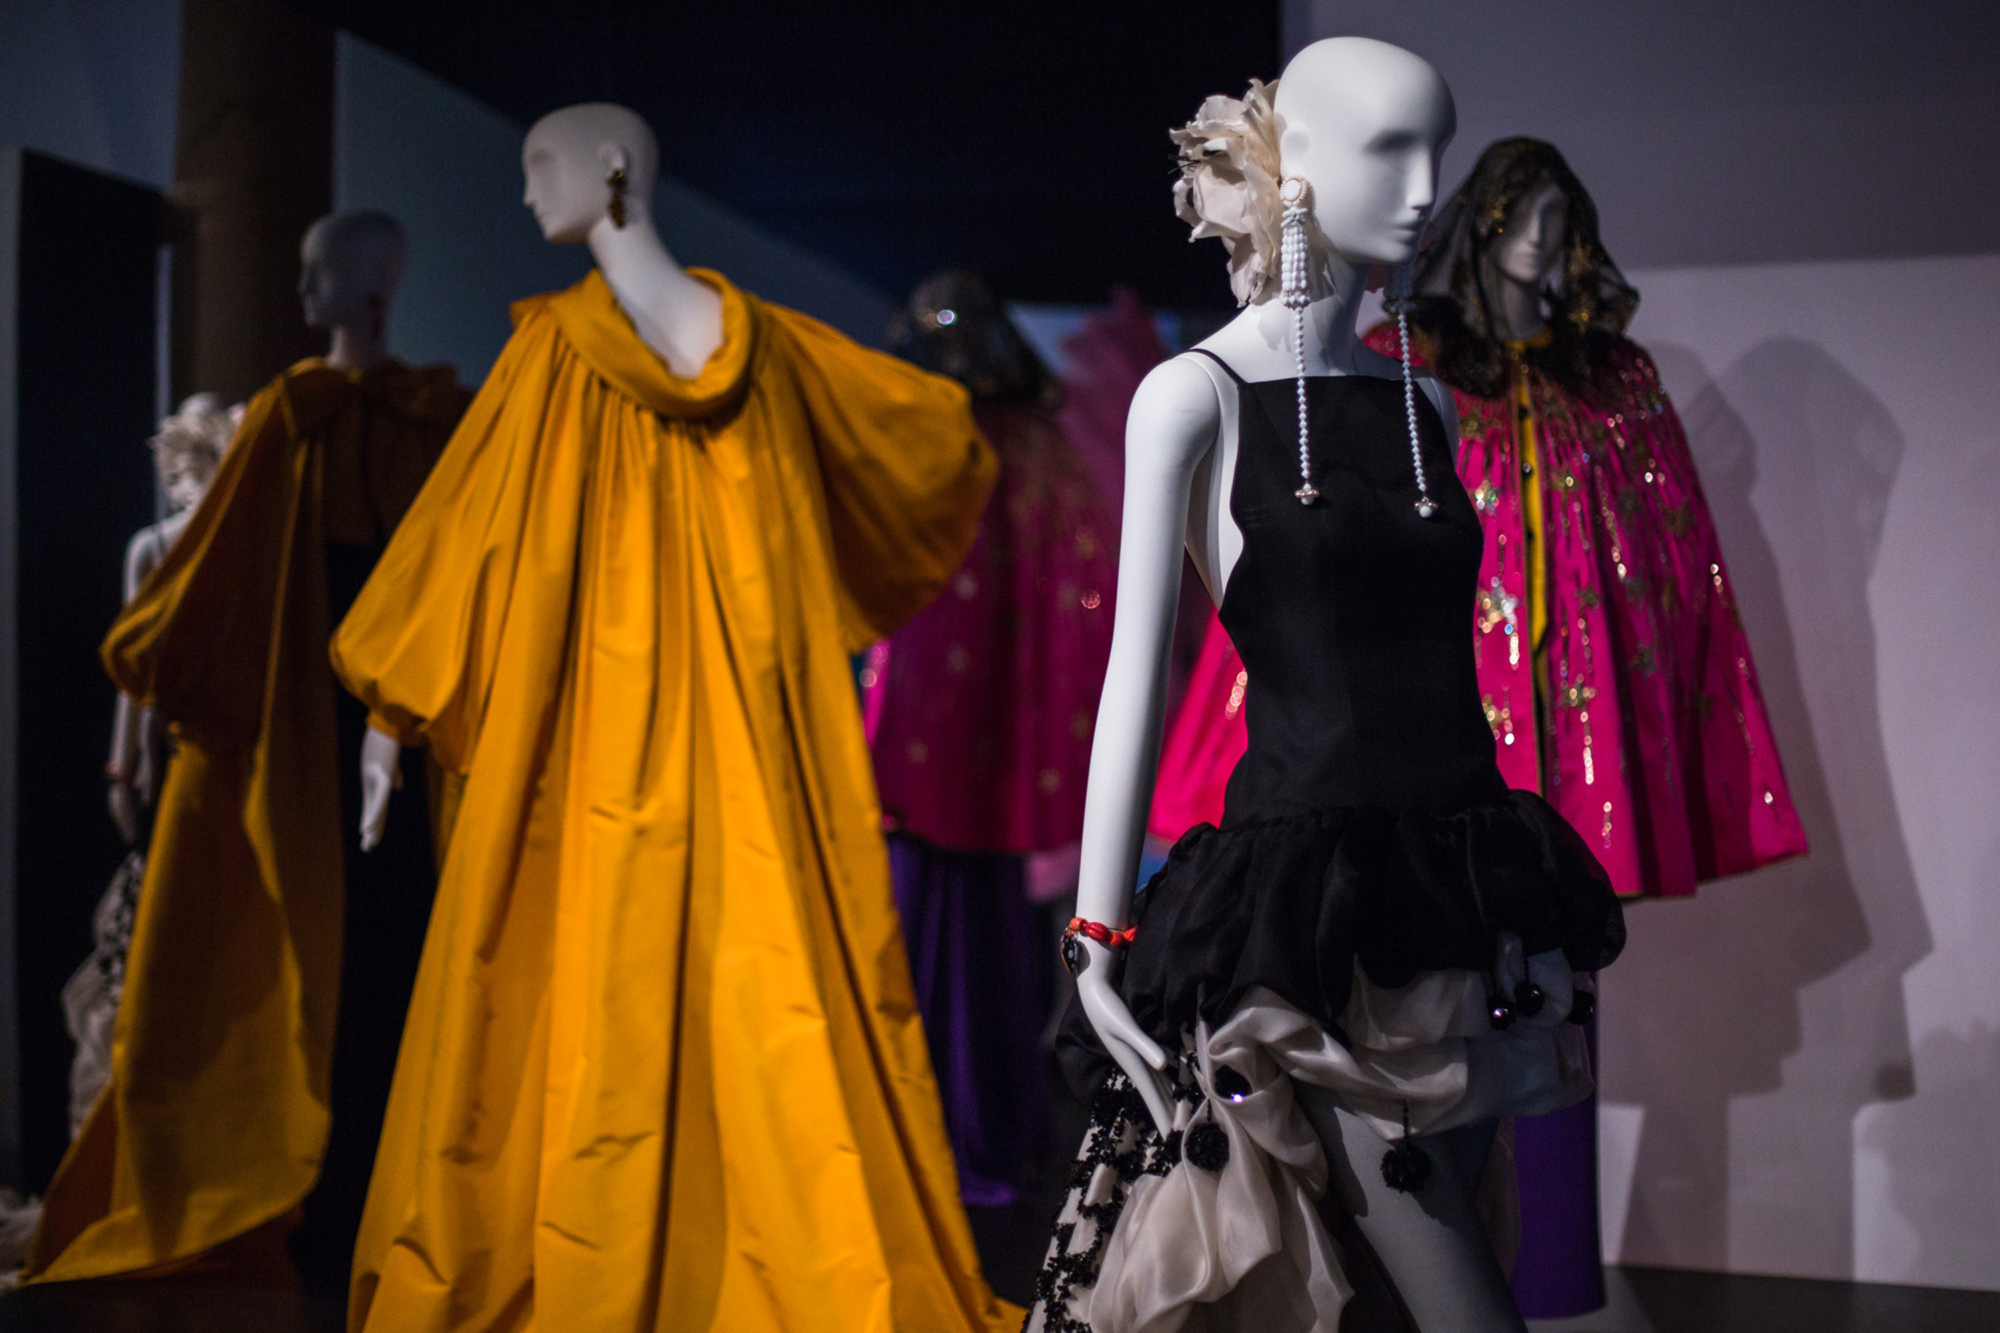 ba5584e56ac Yves Saint Laurent, Style is Eternal exhibition display at the Bowes Museum  in Durham